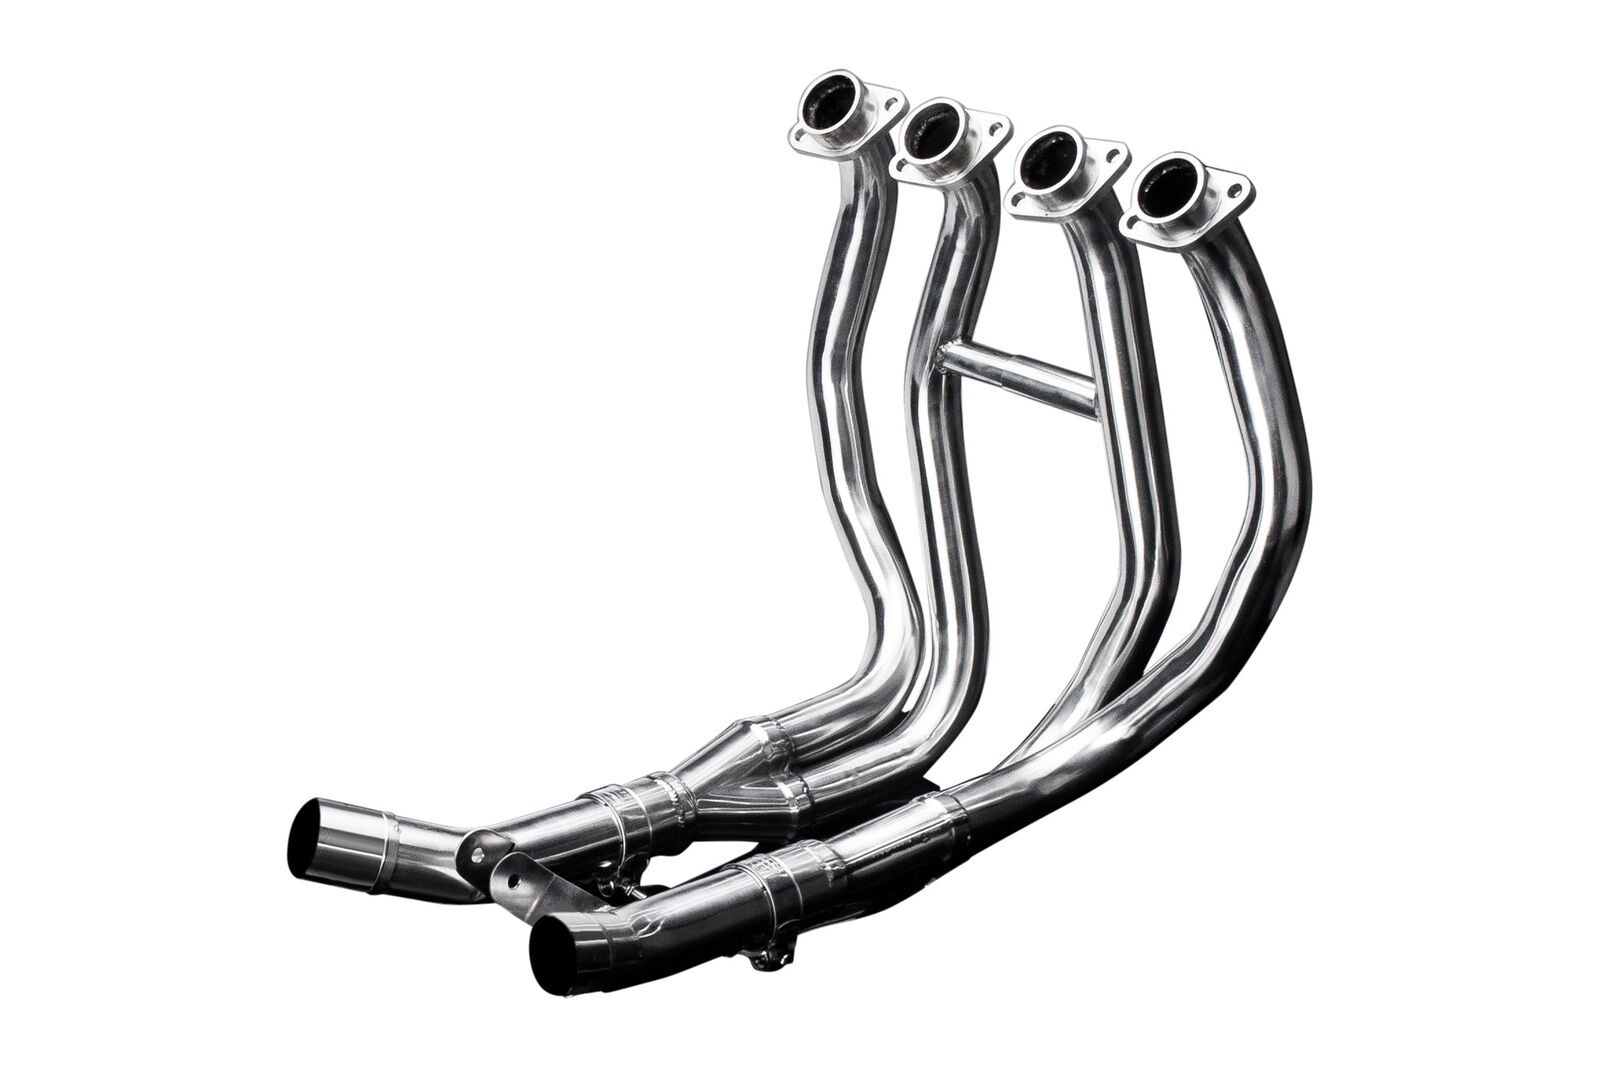 1984-1985 Delkevic Aftermarket Stainless Steel 4-2 Headers and Collector Box compatible with Yamaha FJ1100